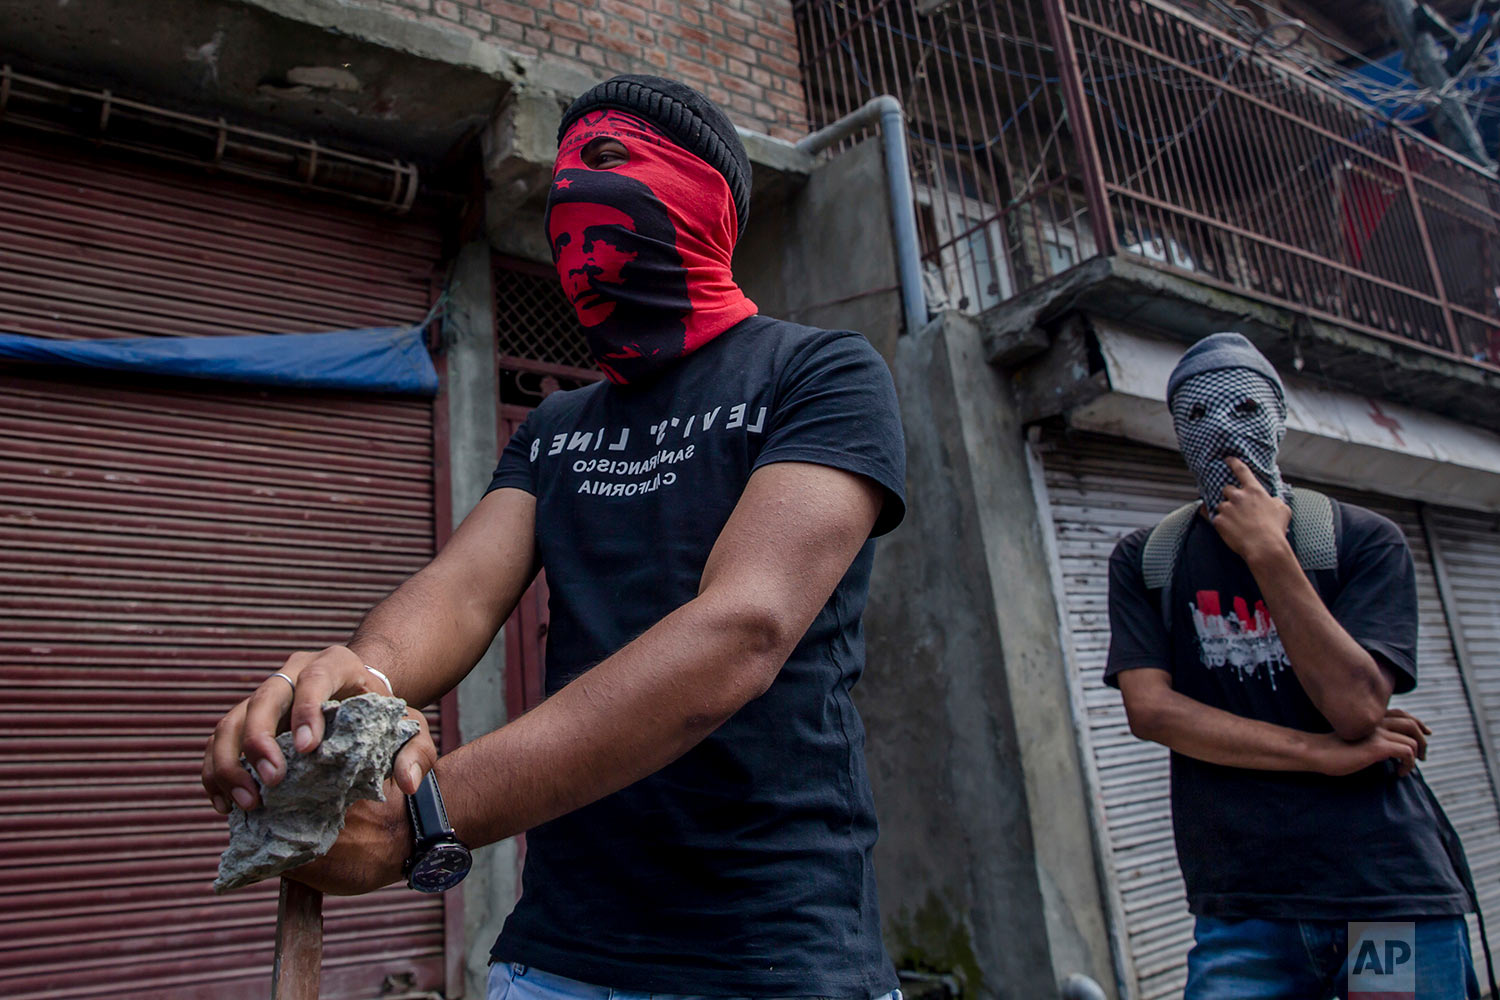 A masked Kashmiri protesters holds a rock as he looks towards the direction of standing policemen in Srinagar, Indian controlled Kashmir, Friday, June 1, 2018. (AP Photo/Dar Yasin)